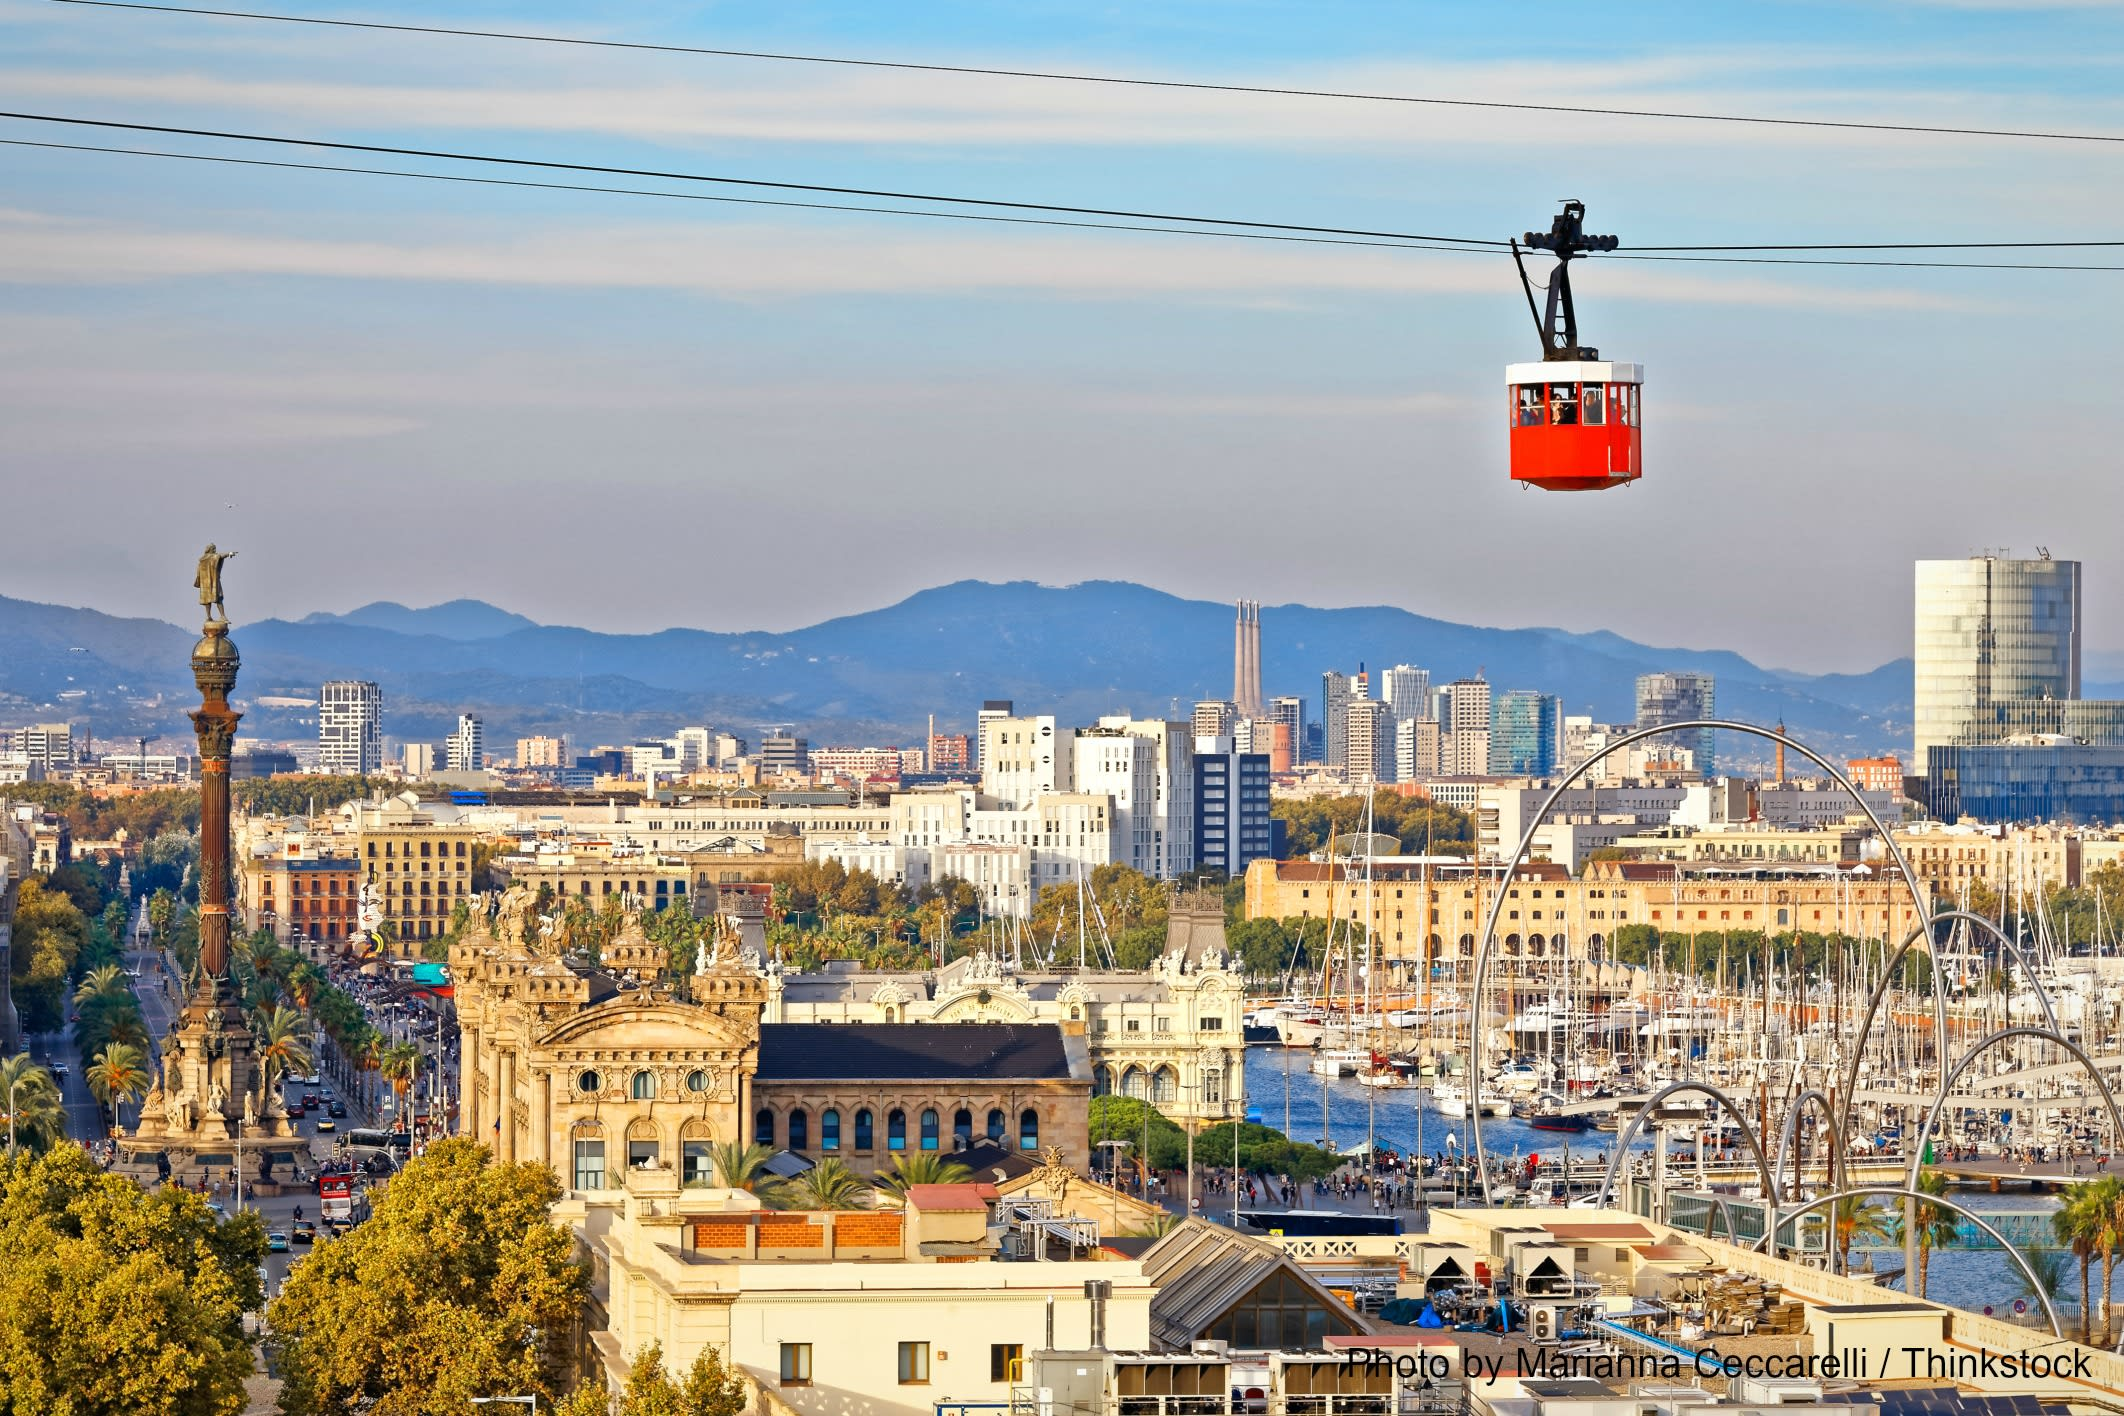 See the best views in the Montjuic Cable Car